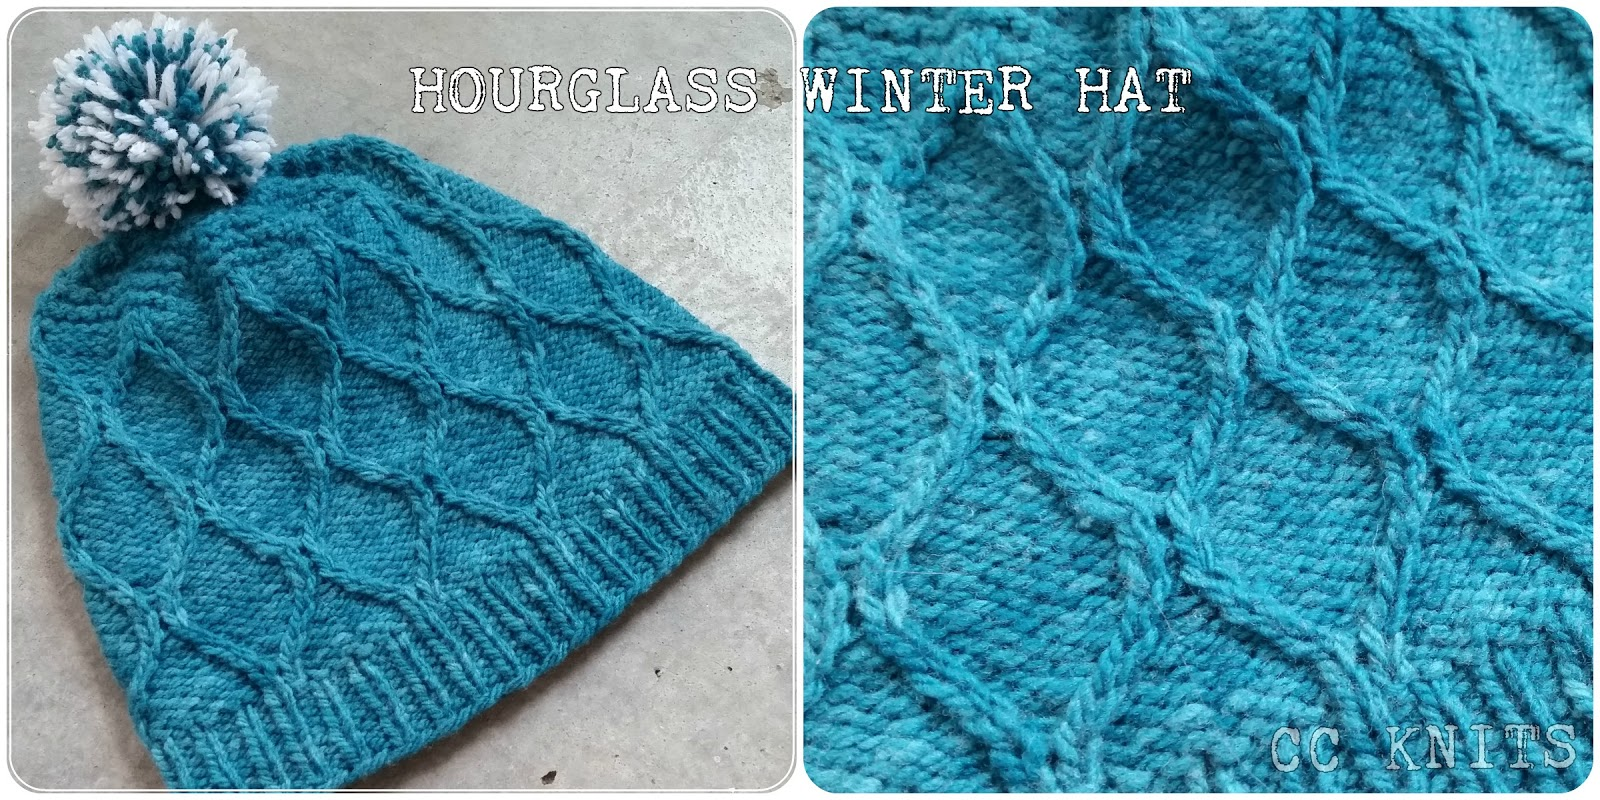 CC Knits: Hourglass Winter Hat (or My First Published Knitting Pattern)